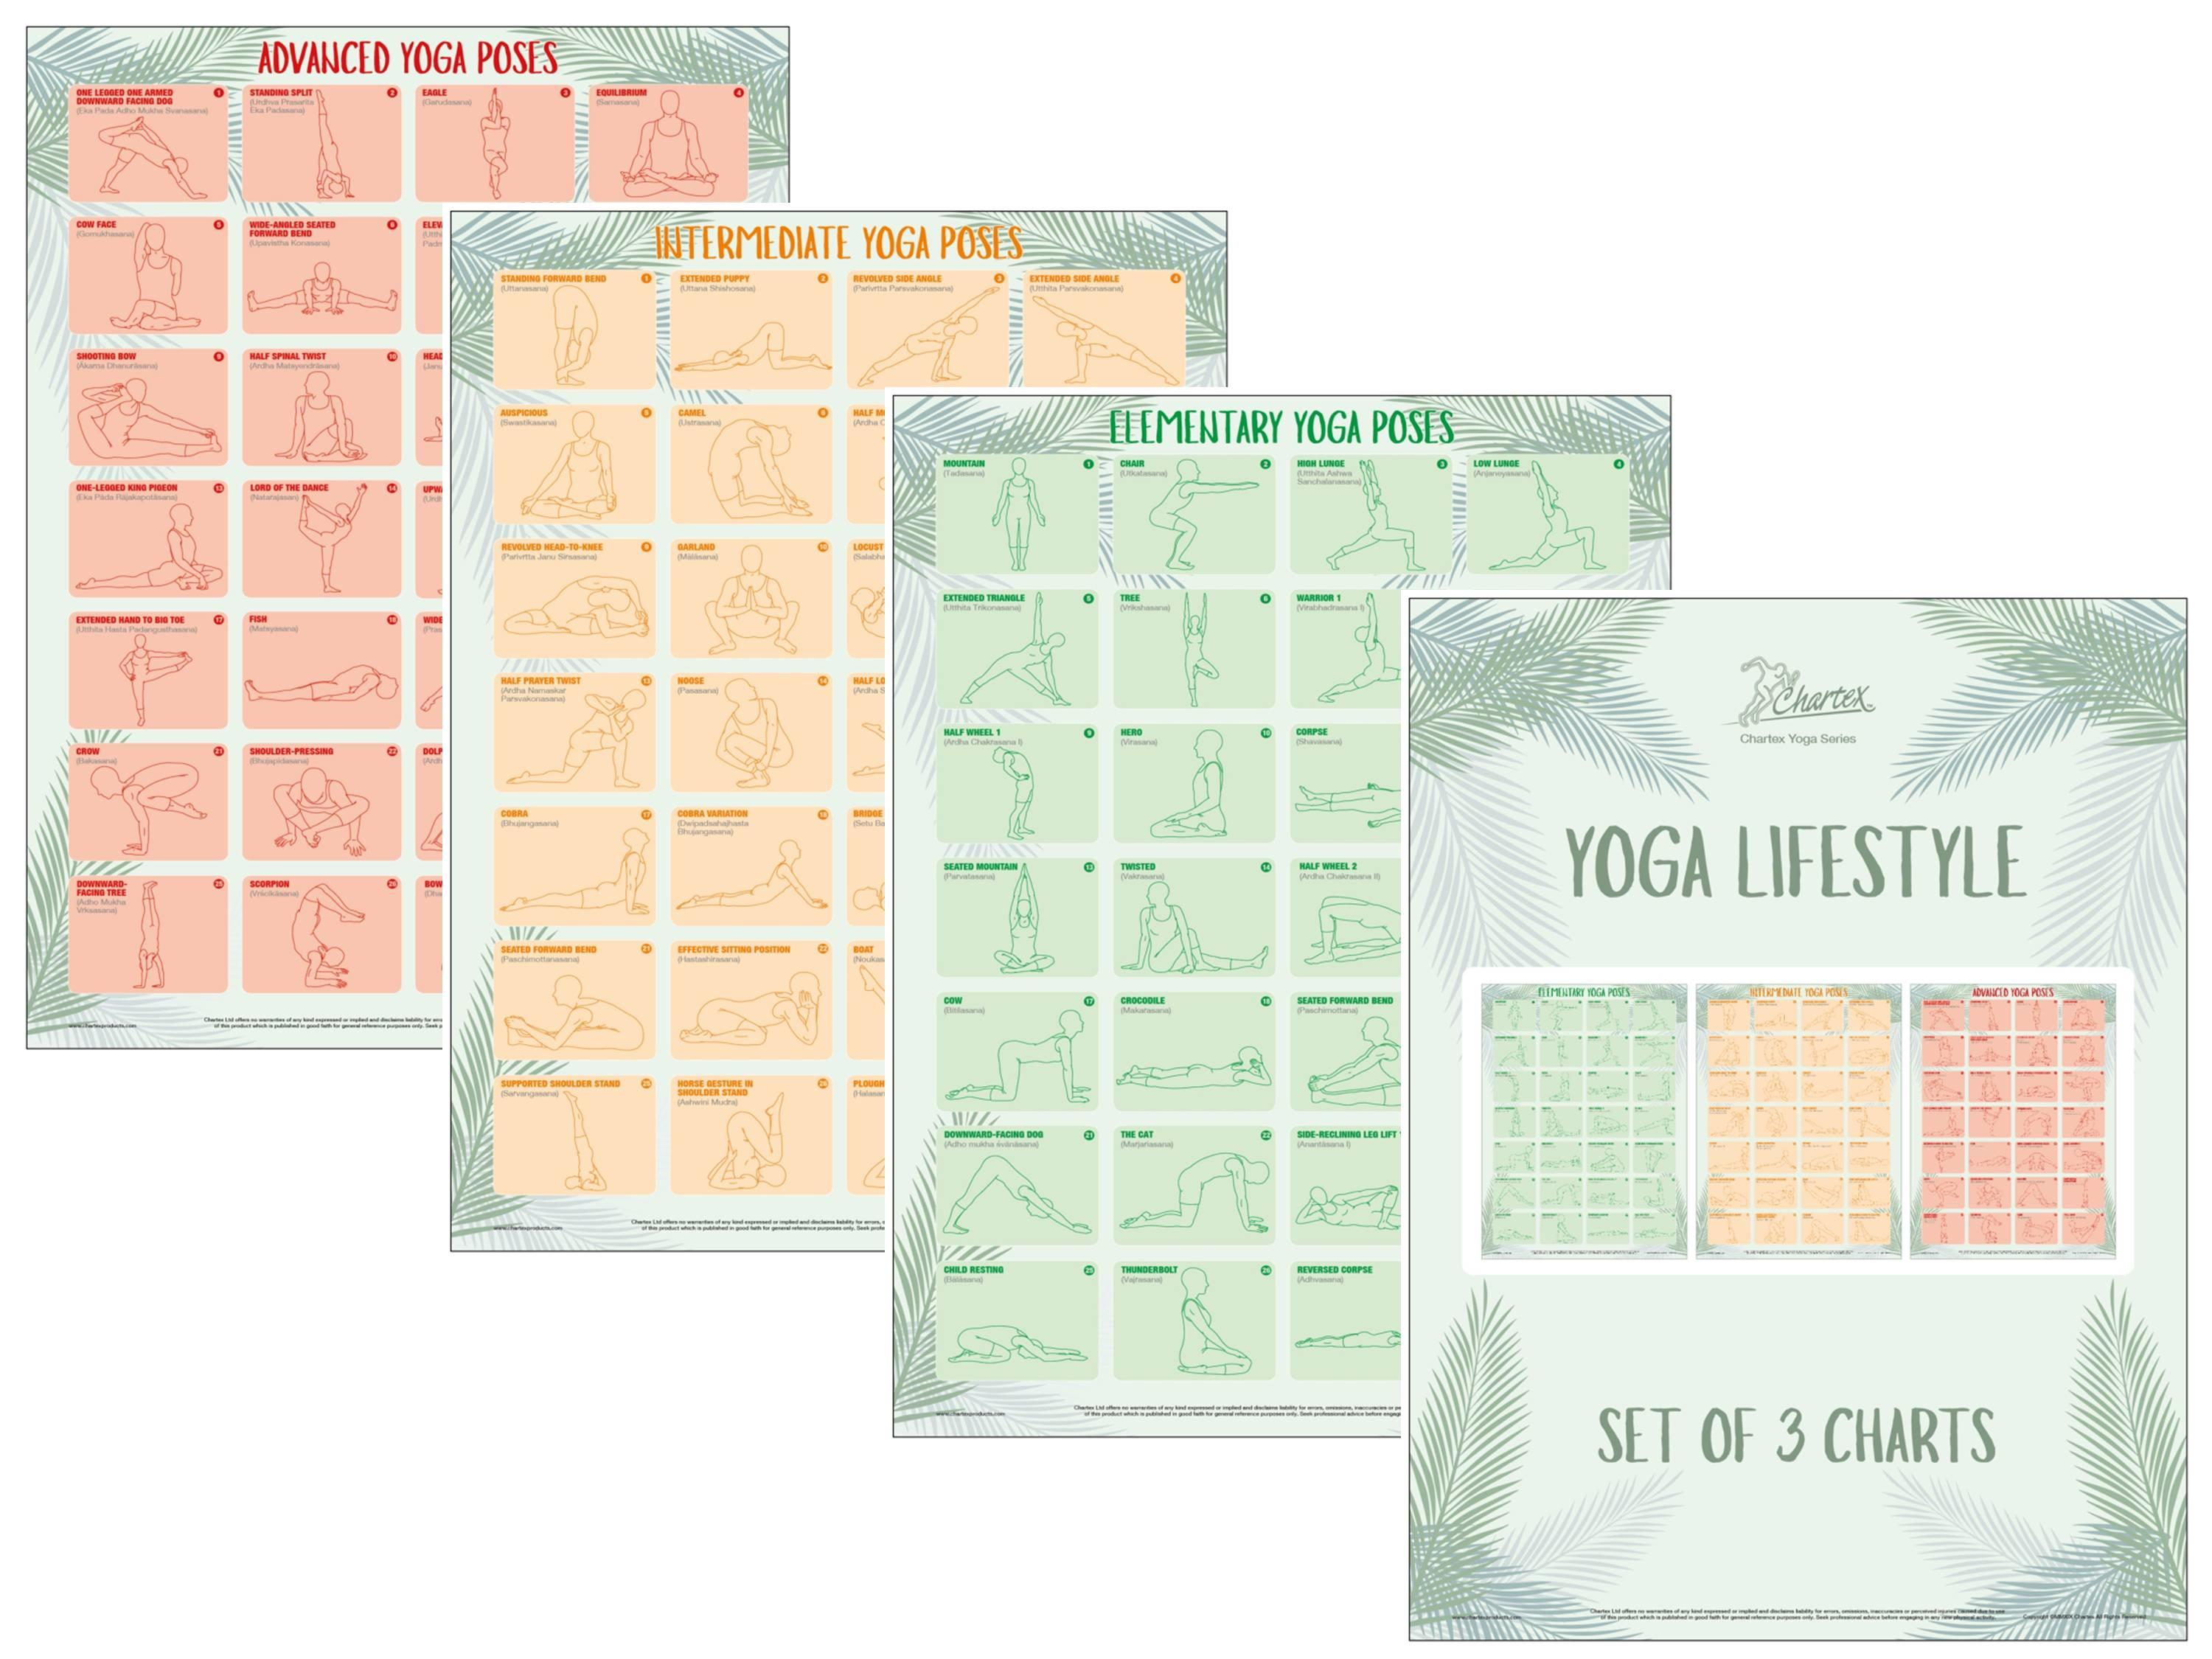 Yoga charts illustrating a traditional range of poses and positions.